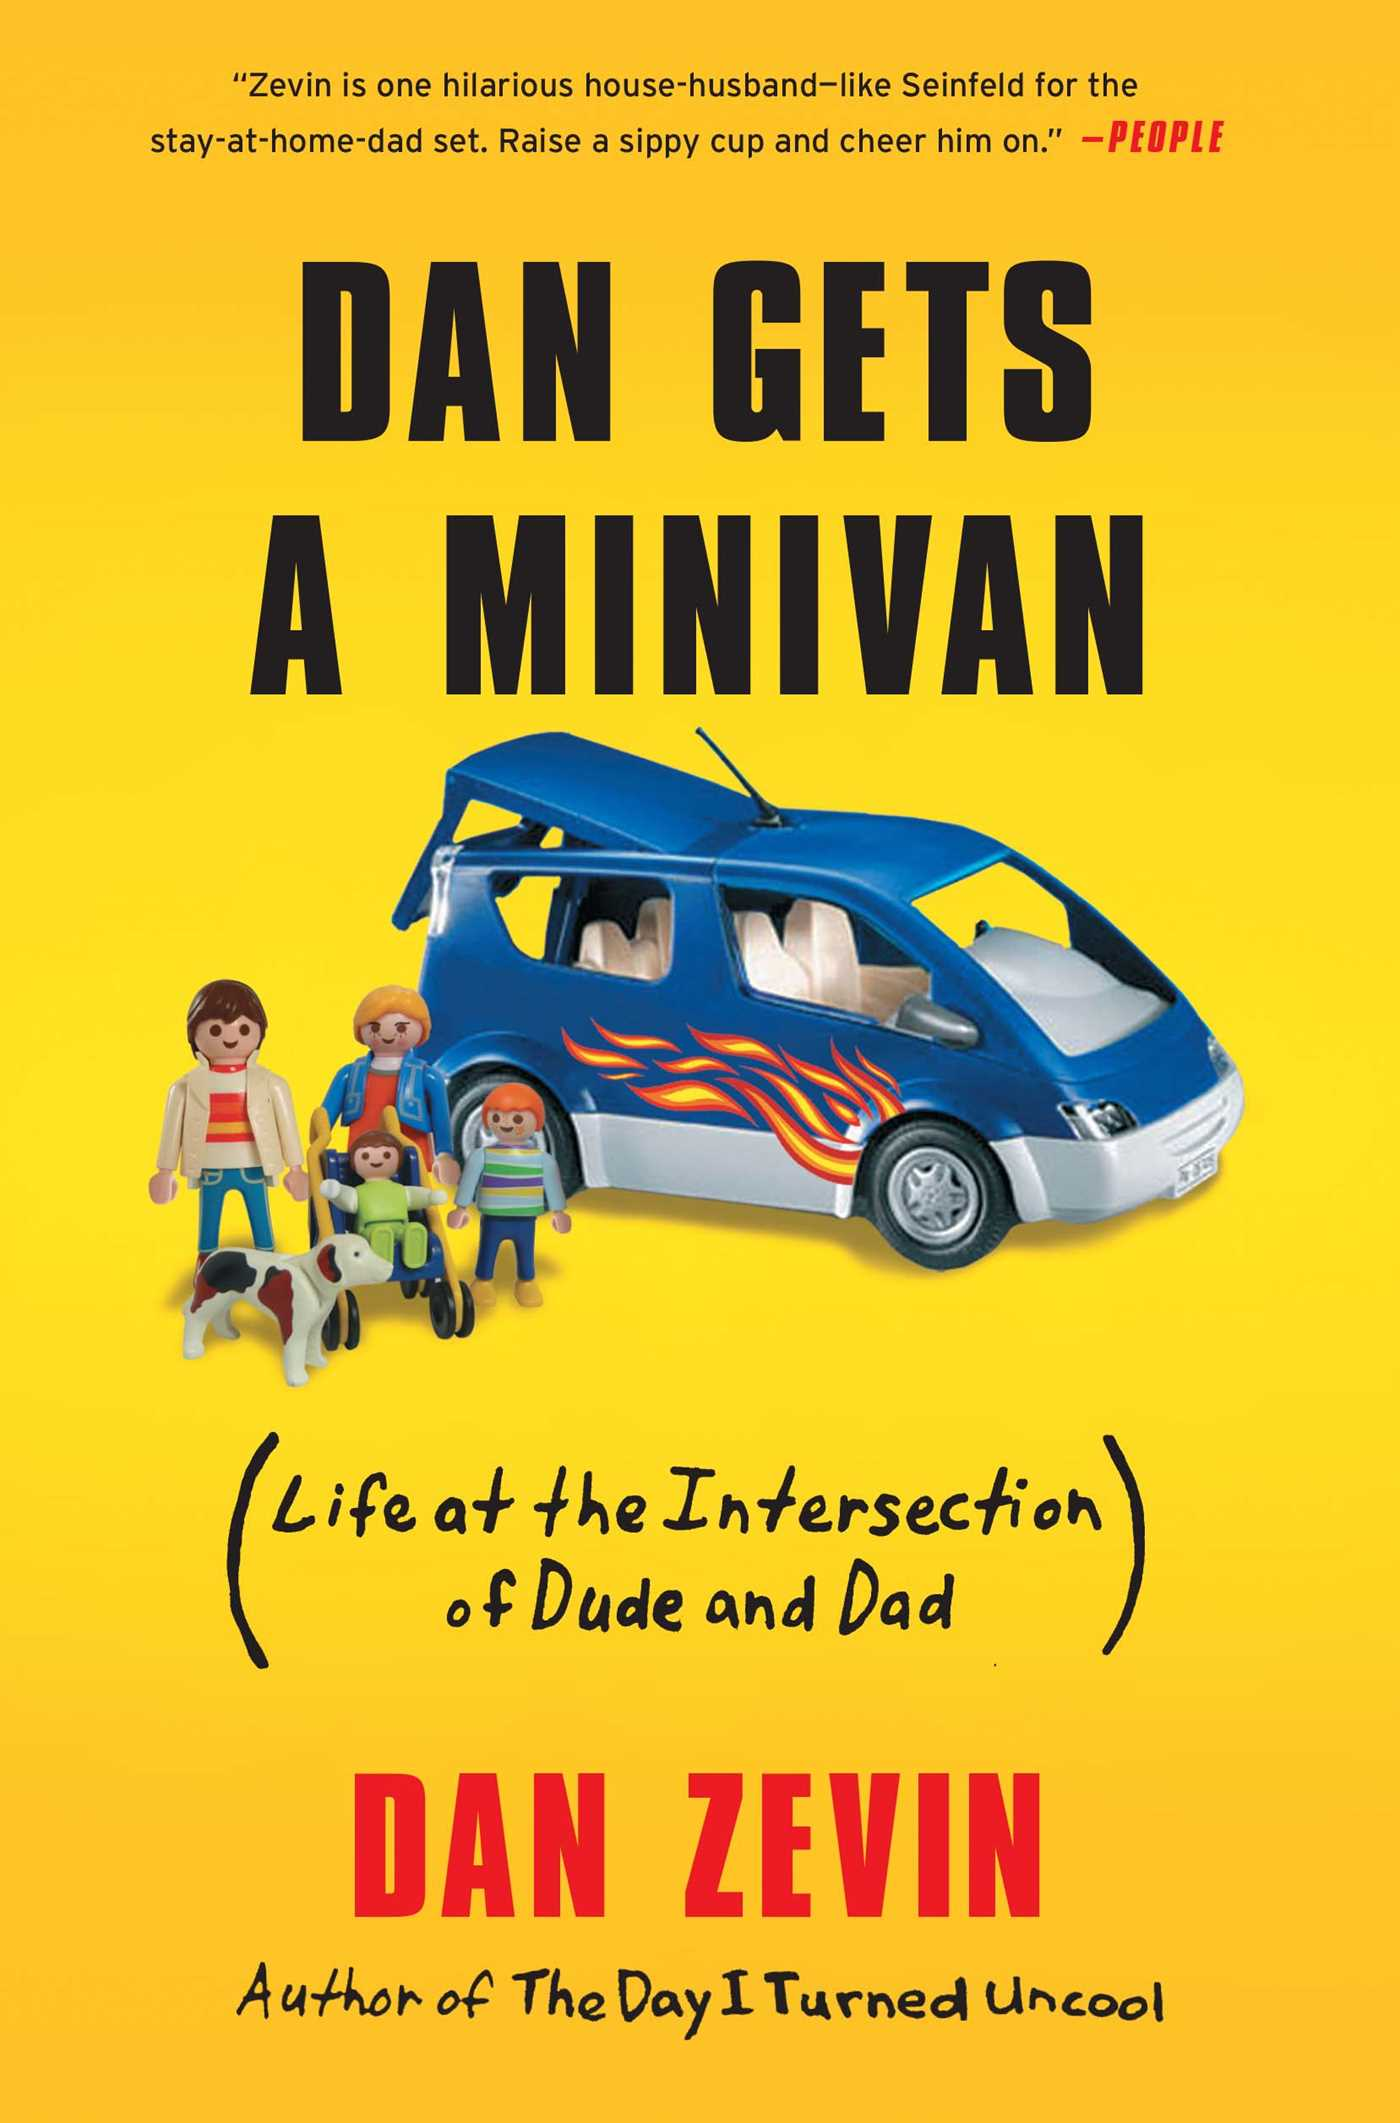 Dan gets a minivan 9781451606478 hr